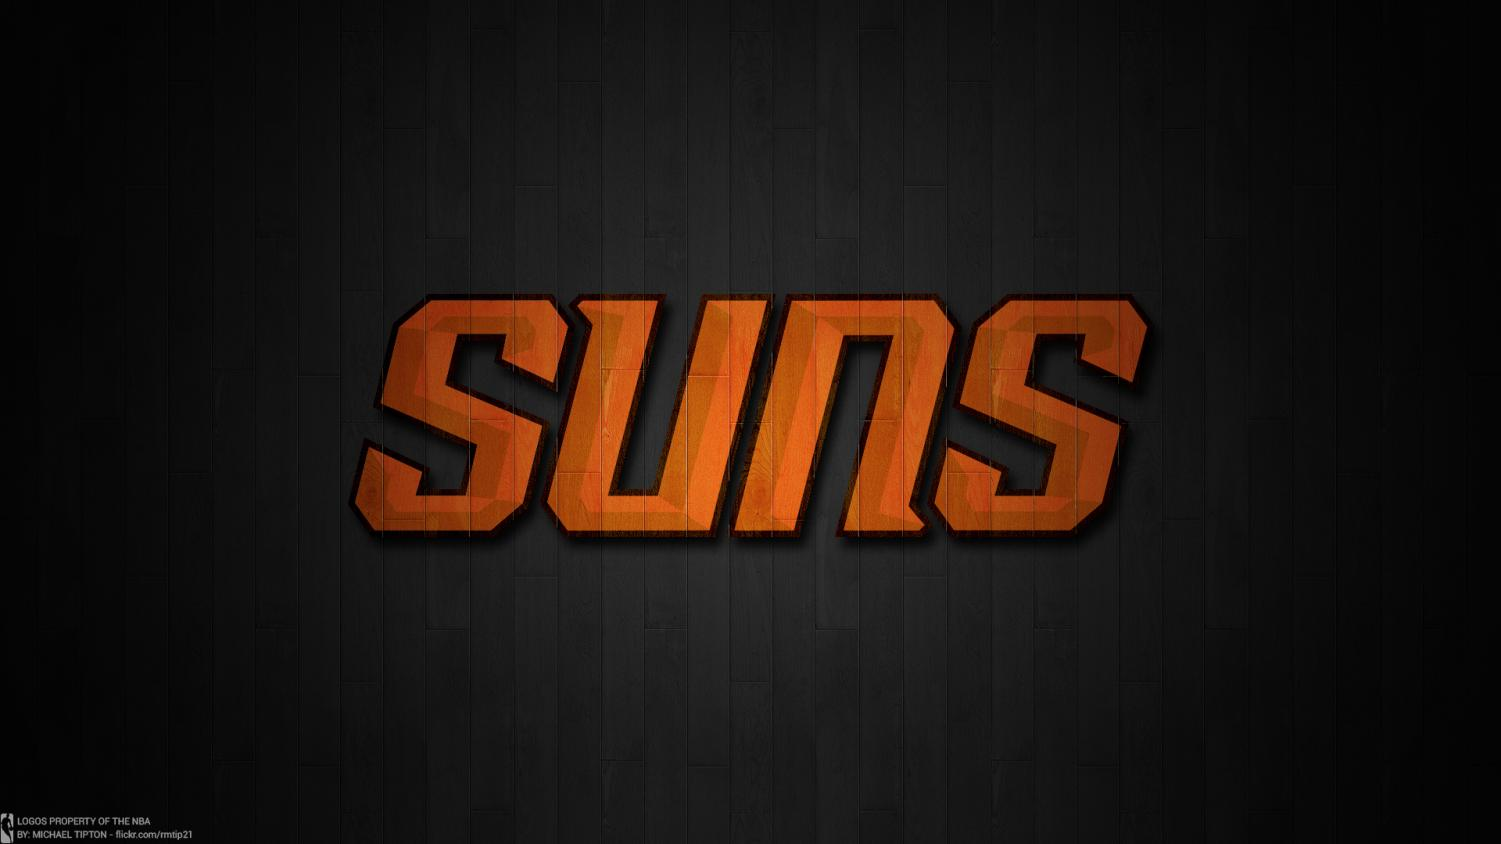 The Phoenix Suns logo in 2013